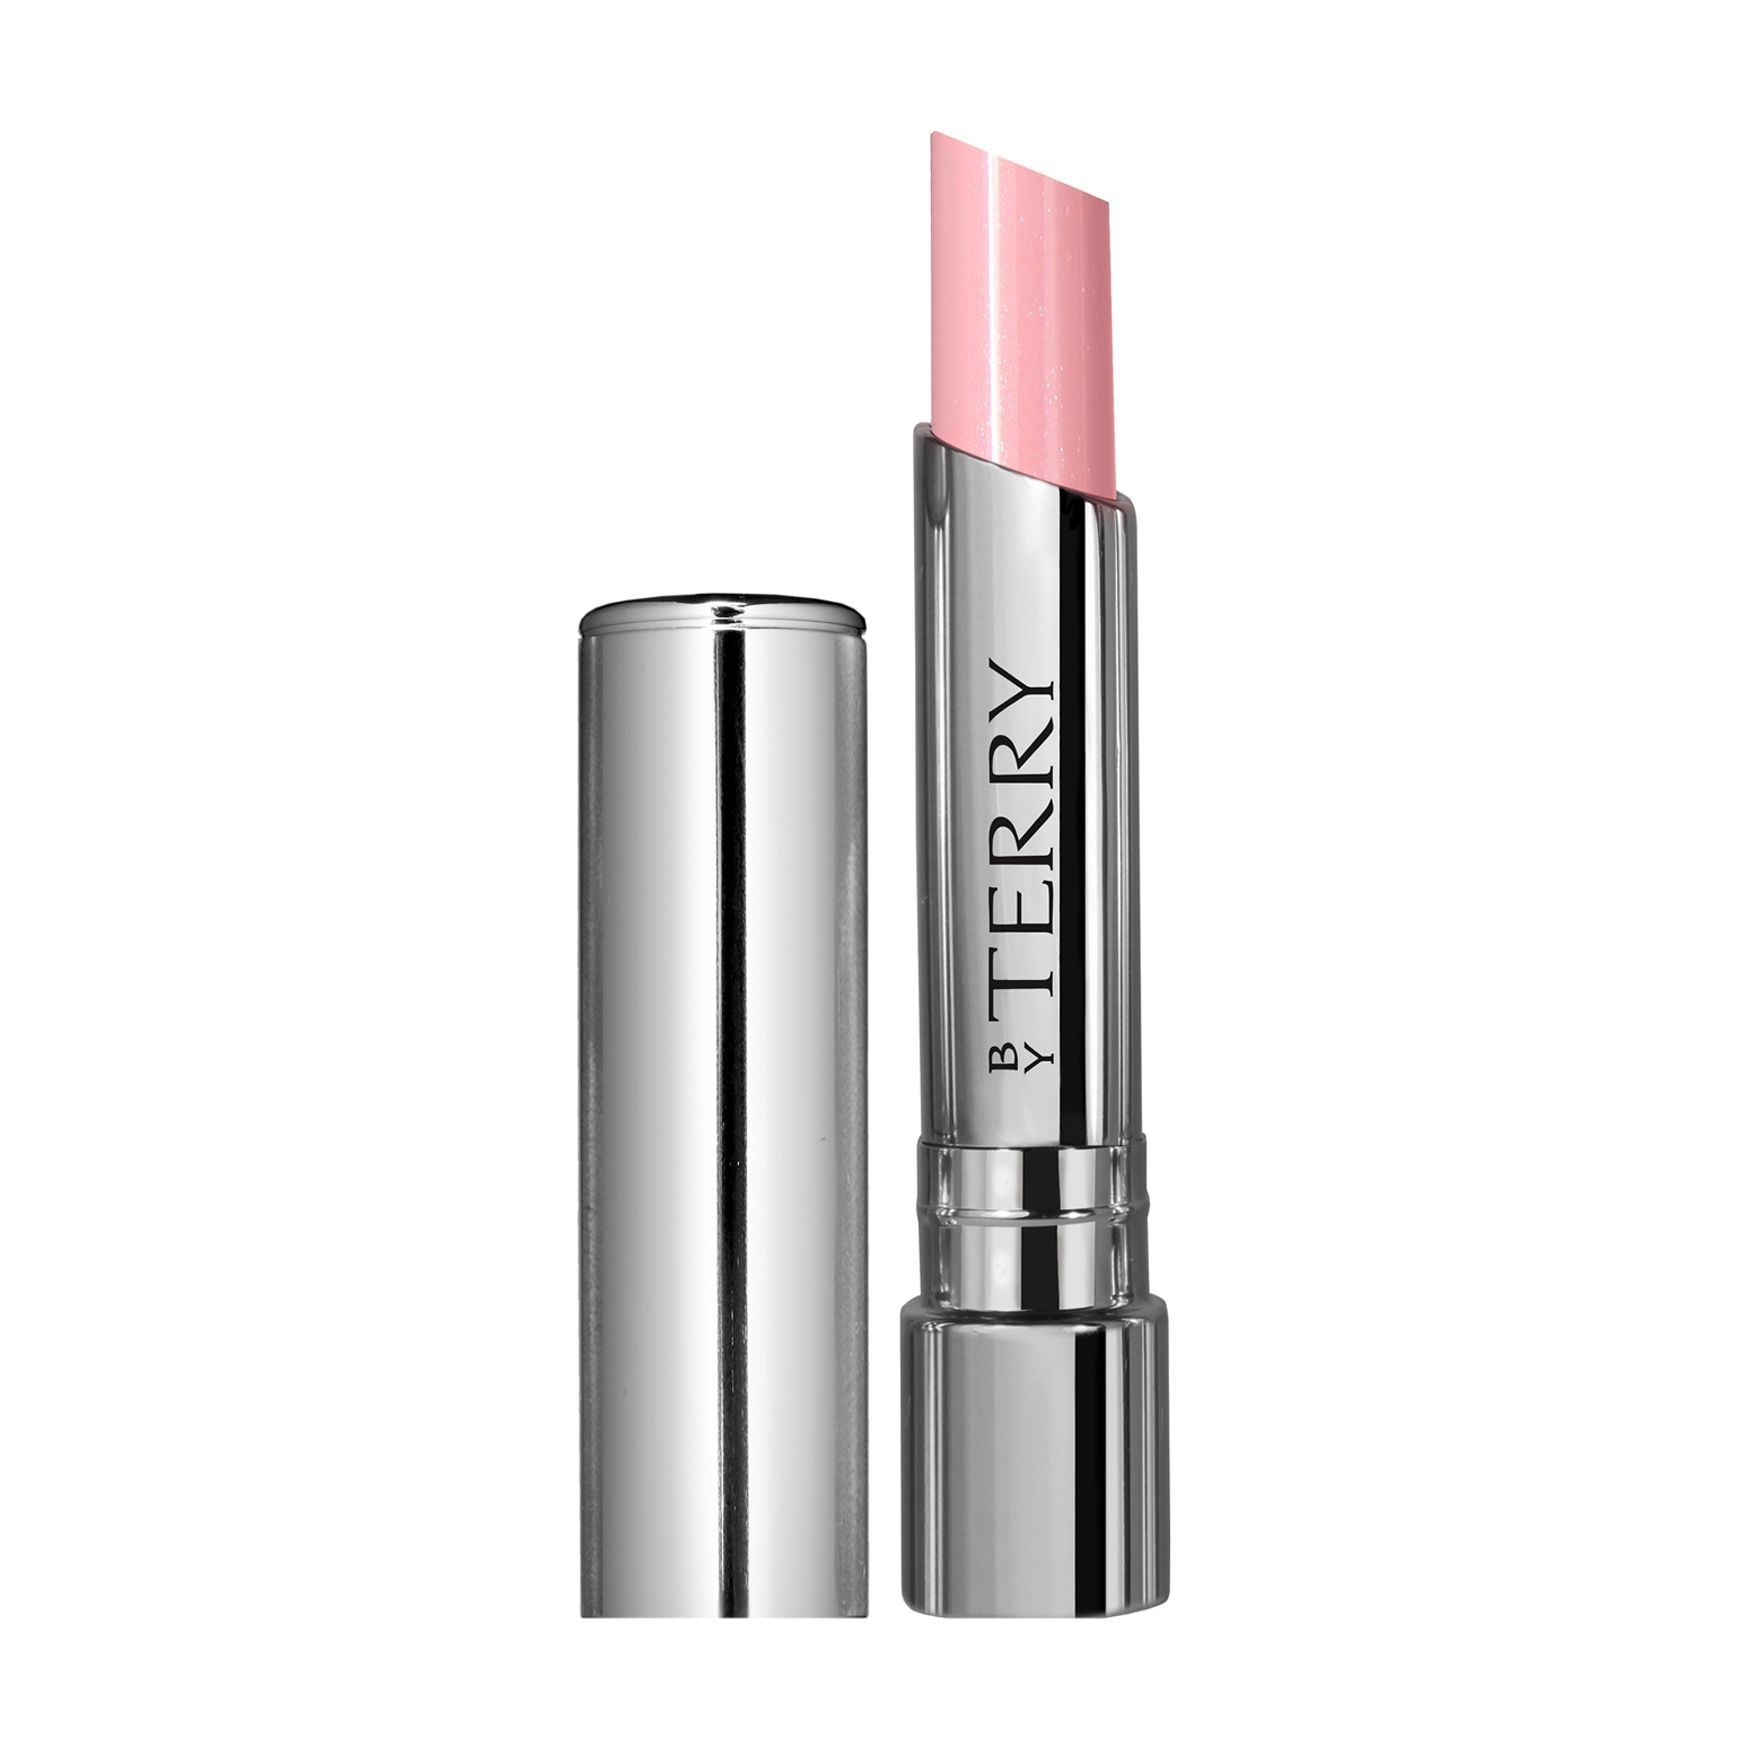 By Terry Hyaluronic Sheer Nude Lipstick No.1, £27, Space.nk